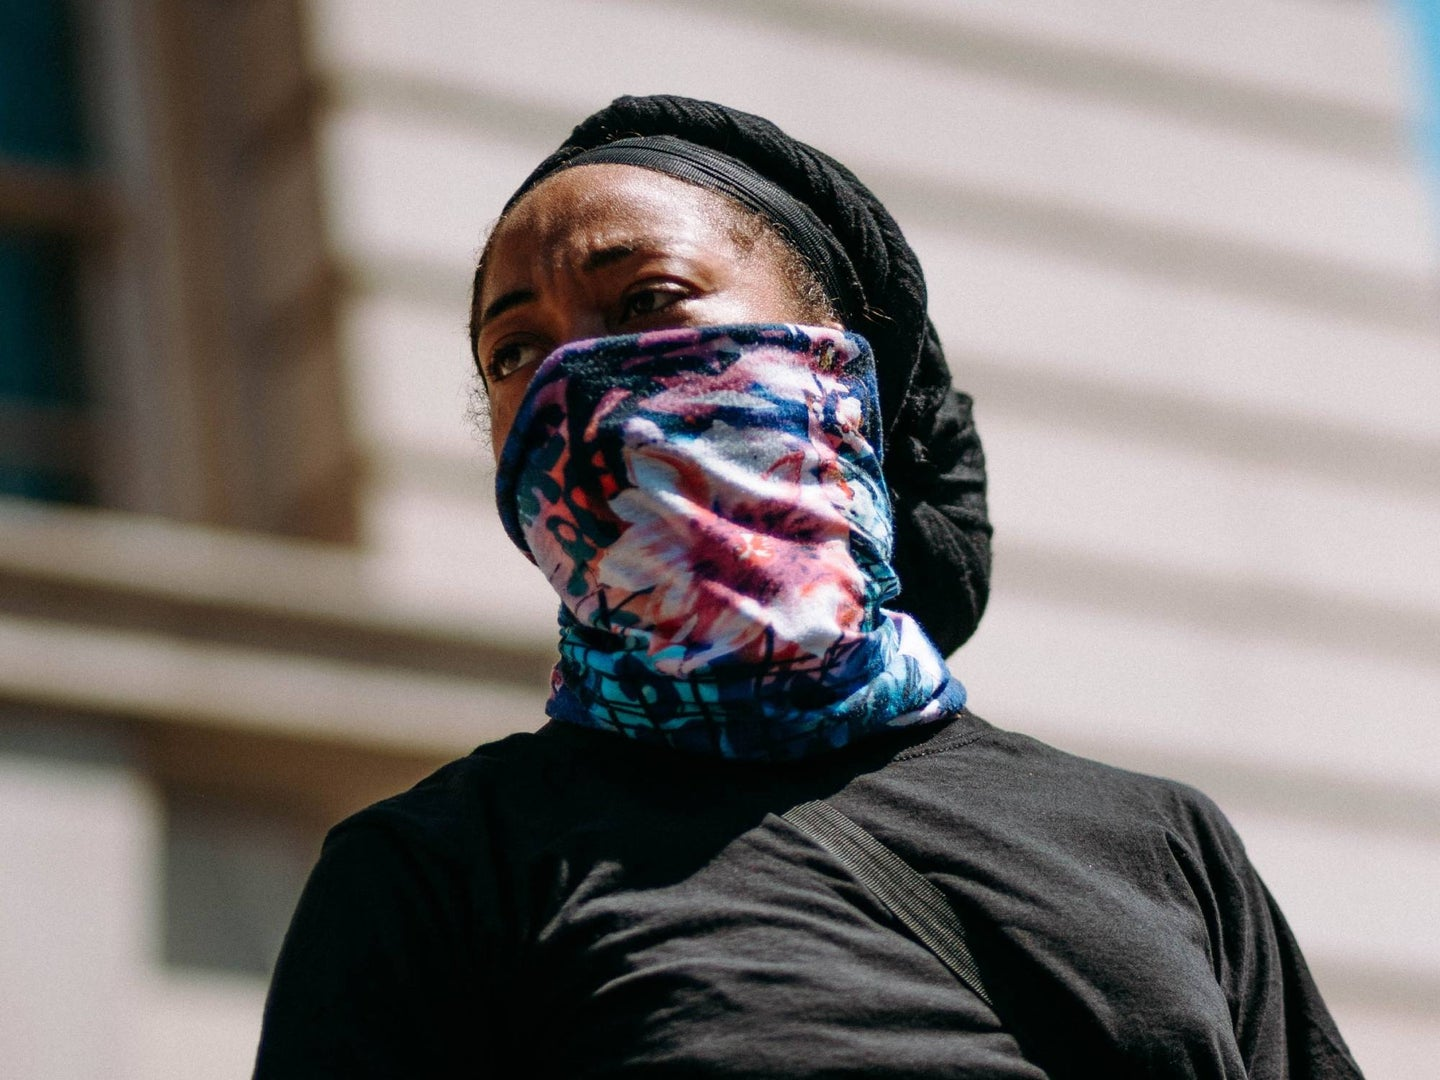 A person using a neck gaiter as a face mask.